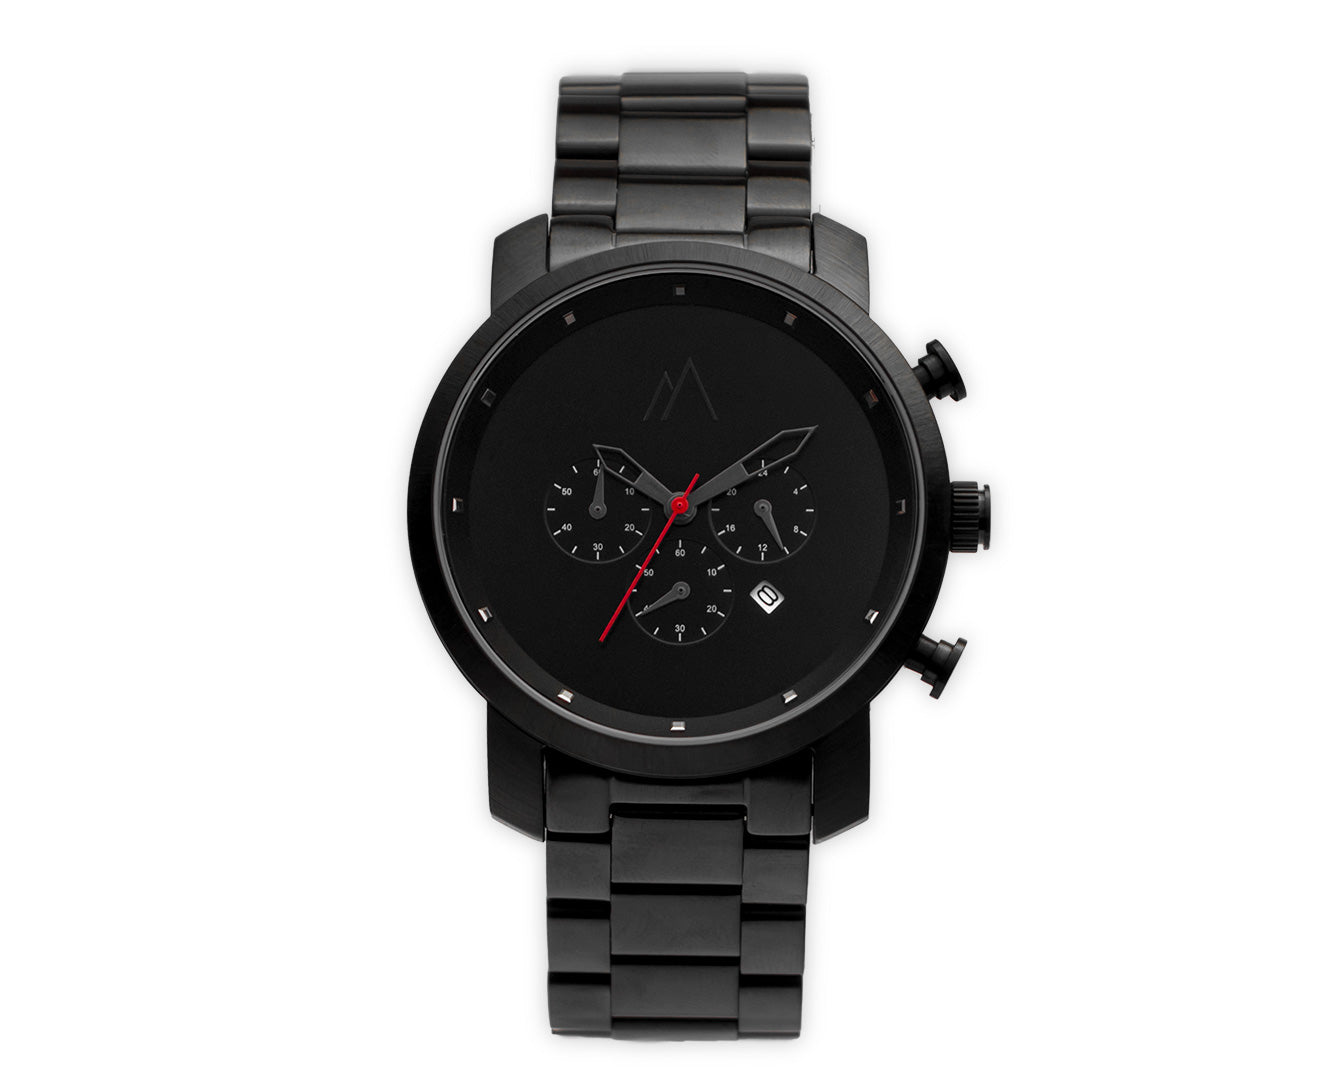 Quartz chronograph date watch metallic bands black and red